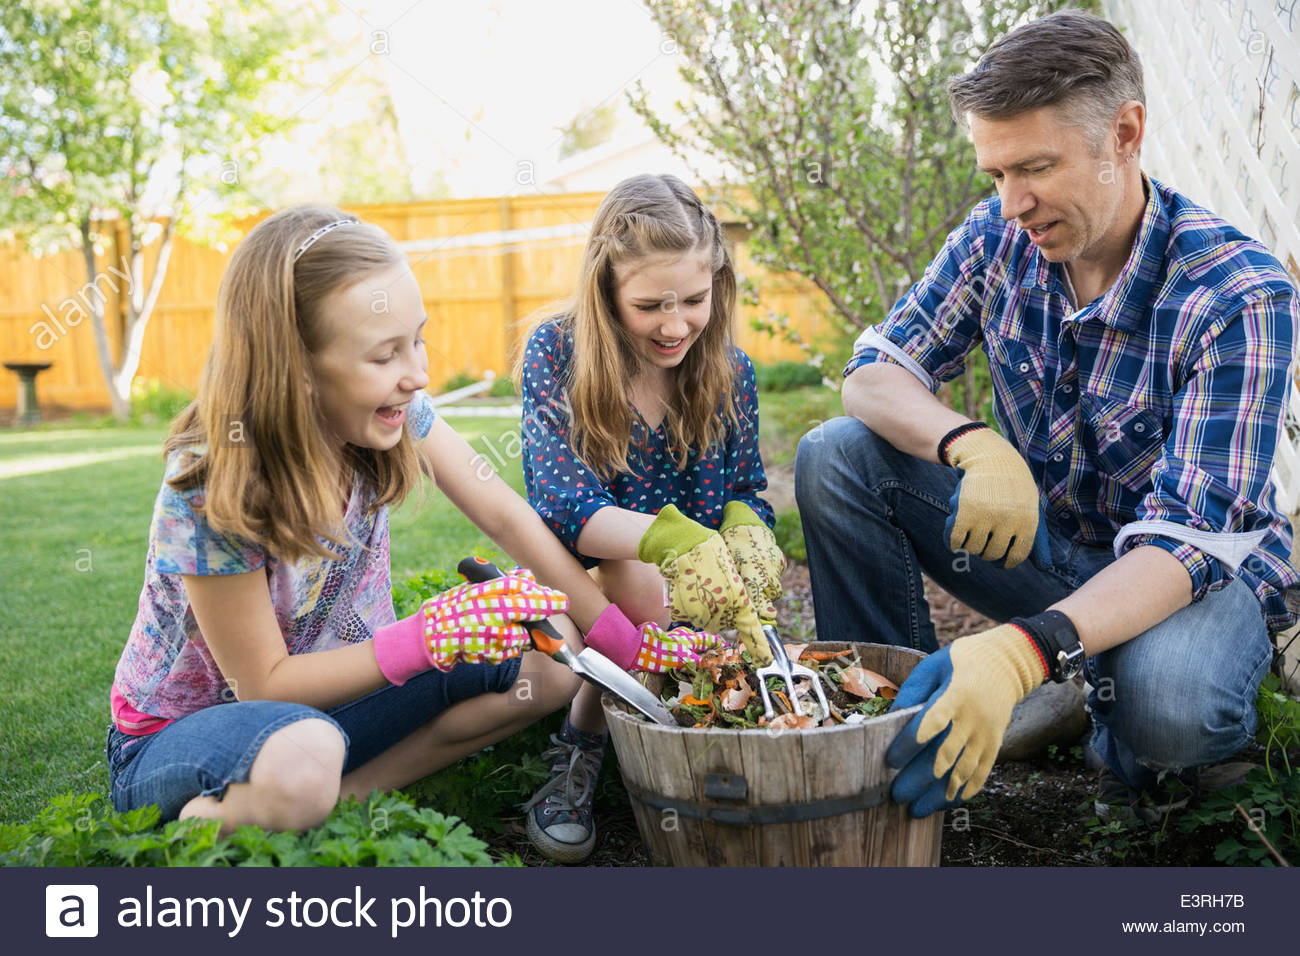 Father and daughters planting flowers in garden - Stock Image